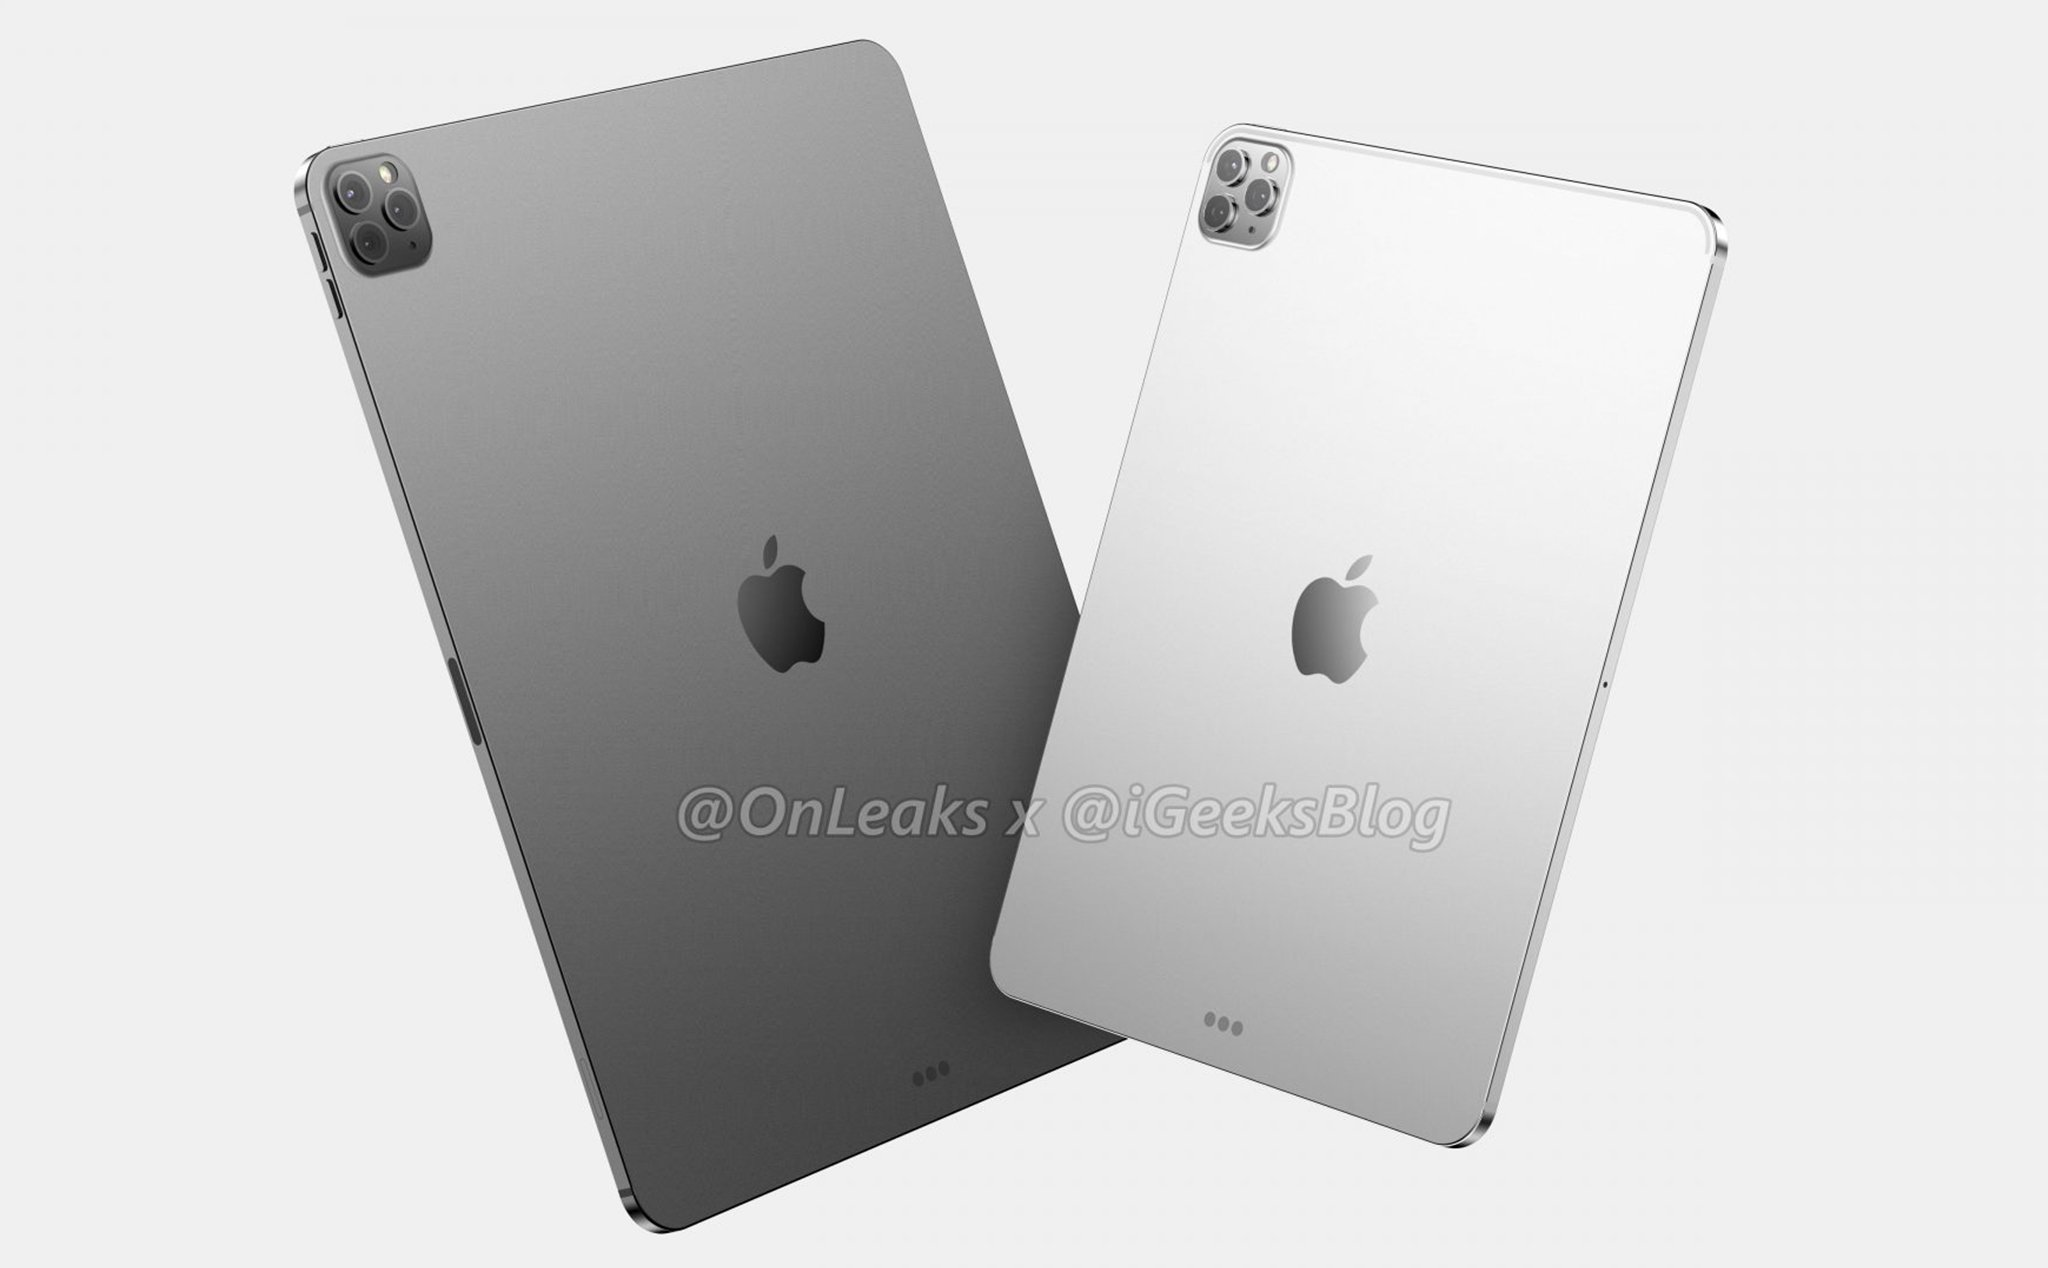 Leaked render of new iPad Pro with cluster of 3 cameras like on iPhone 11 Pro